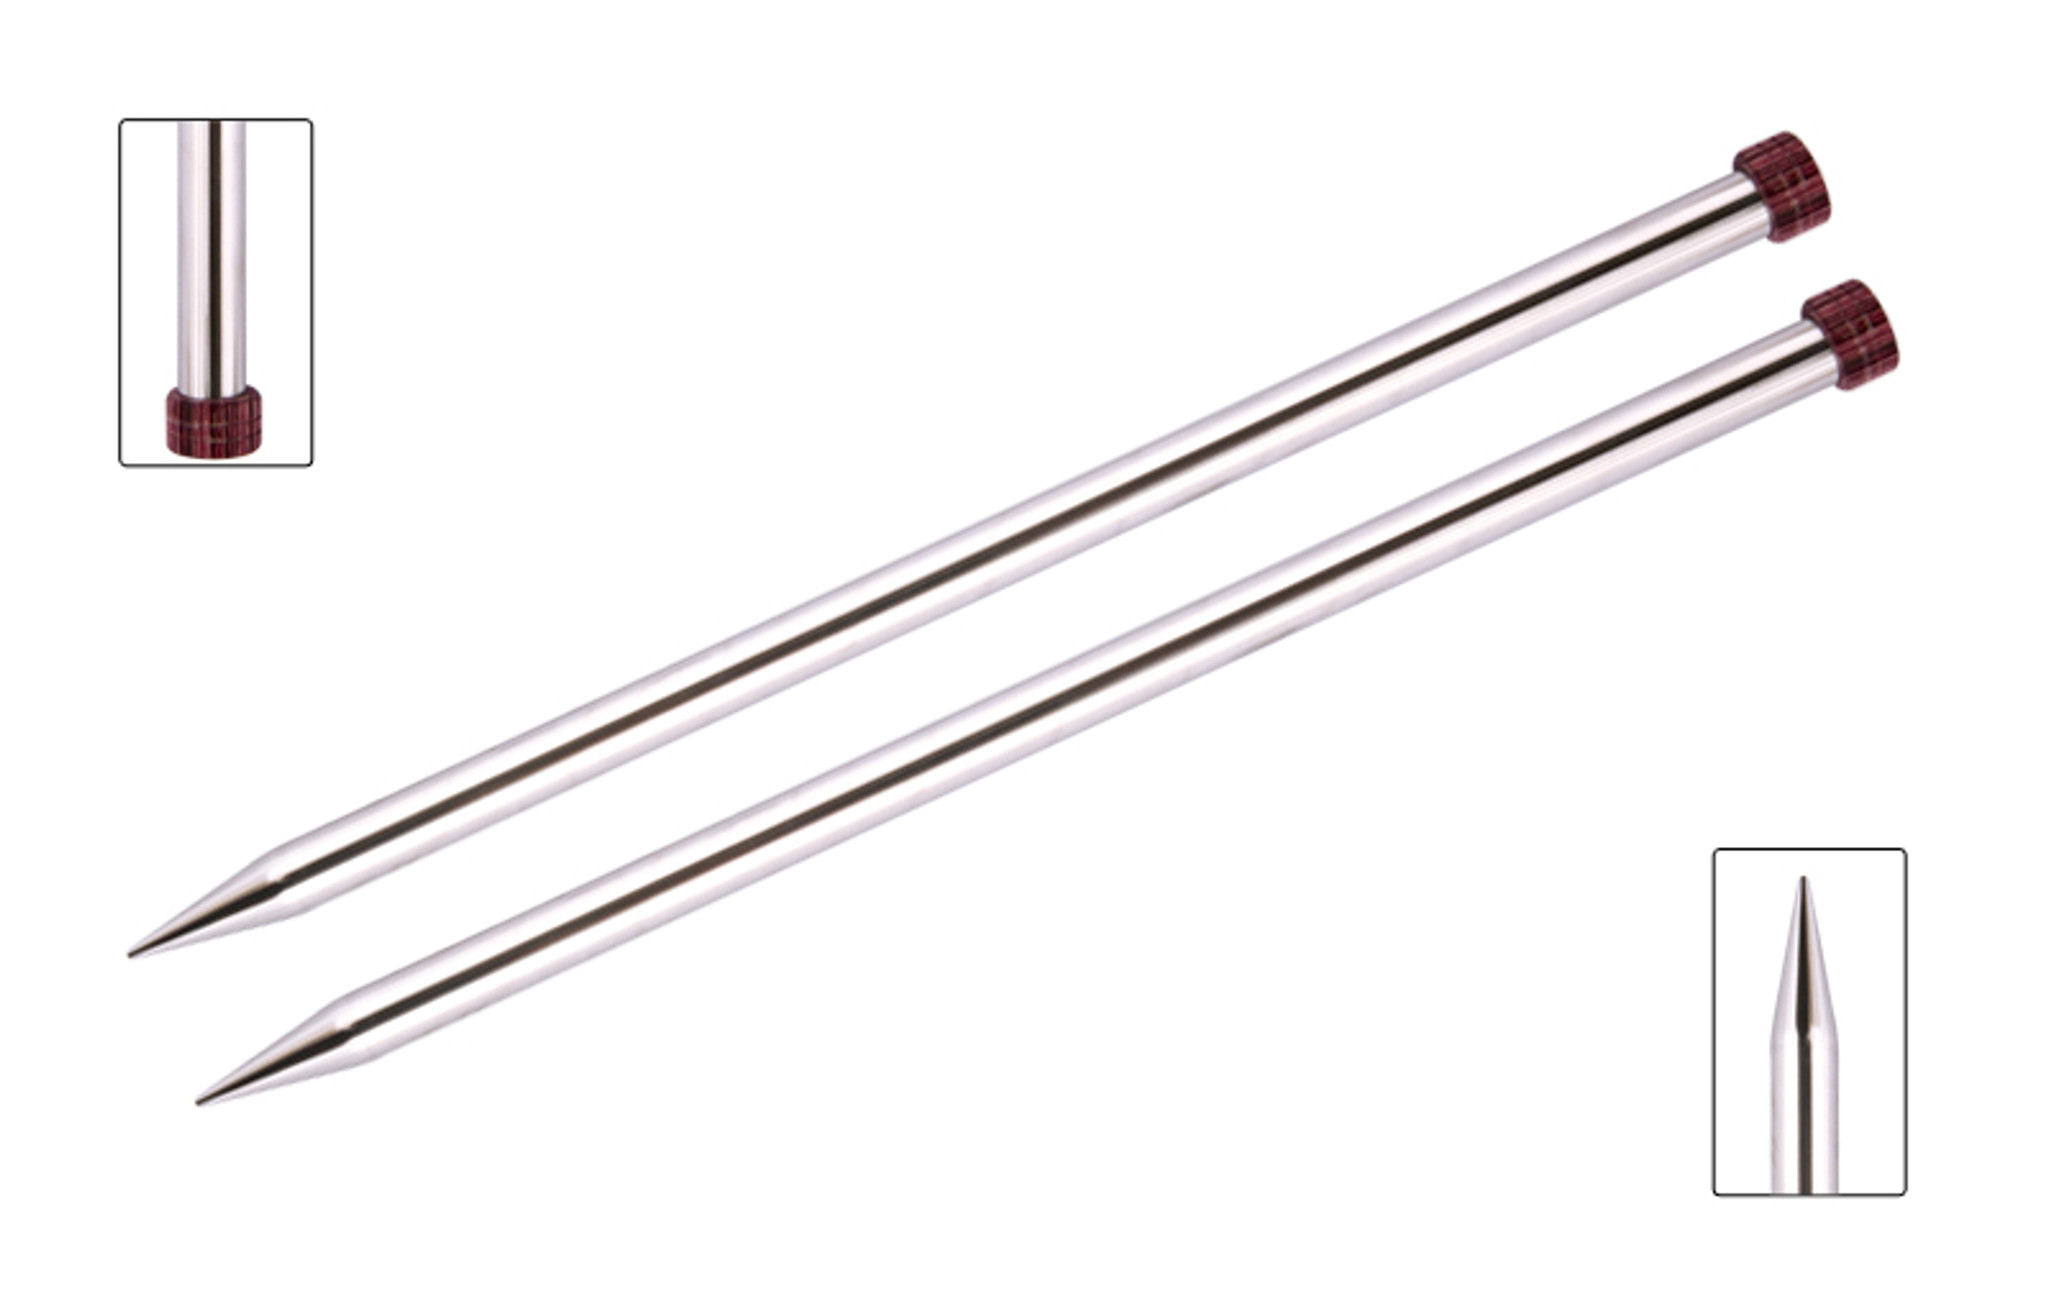 KnitPro Nova Metal Single Pointed Knitting Needles 35cm